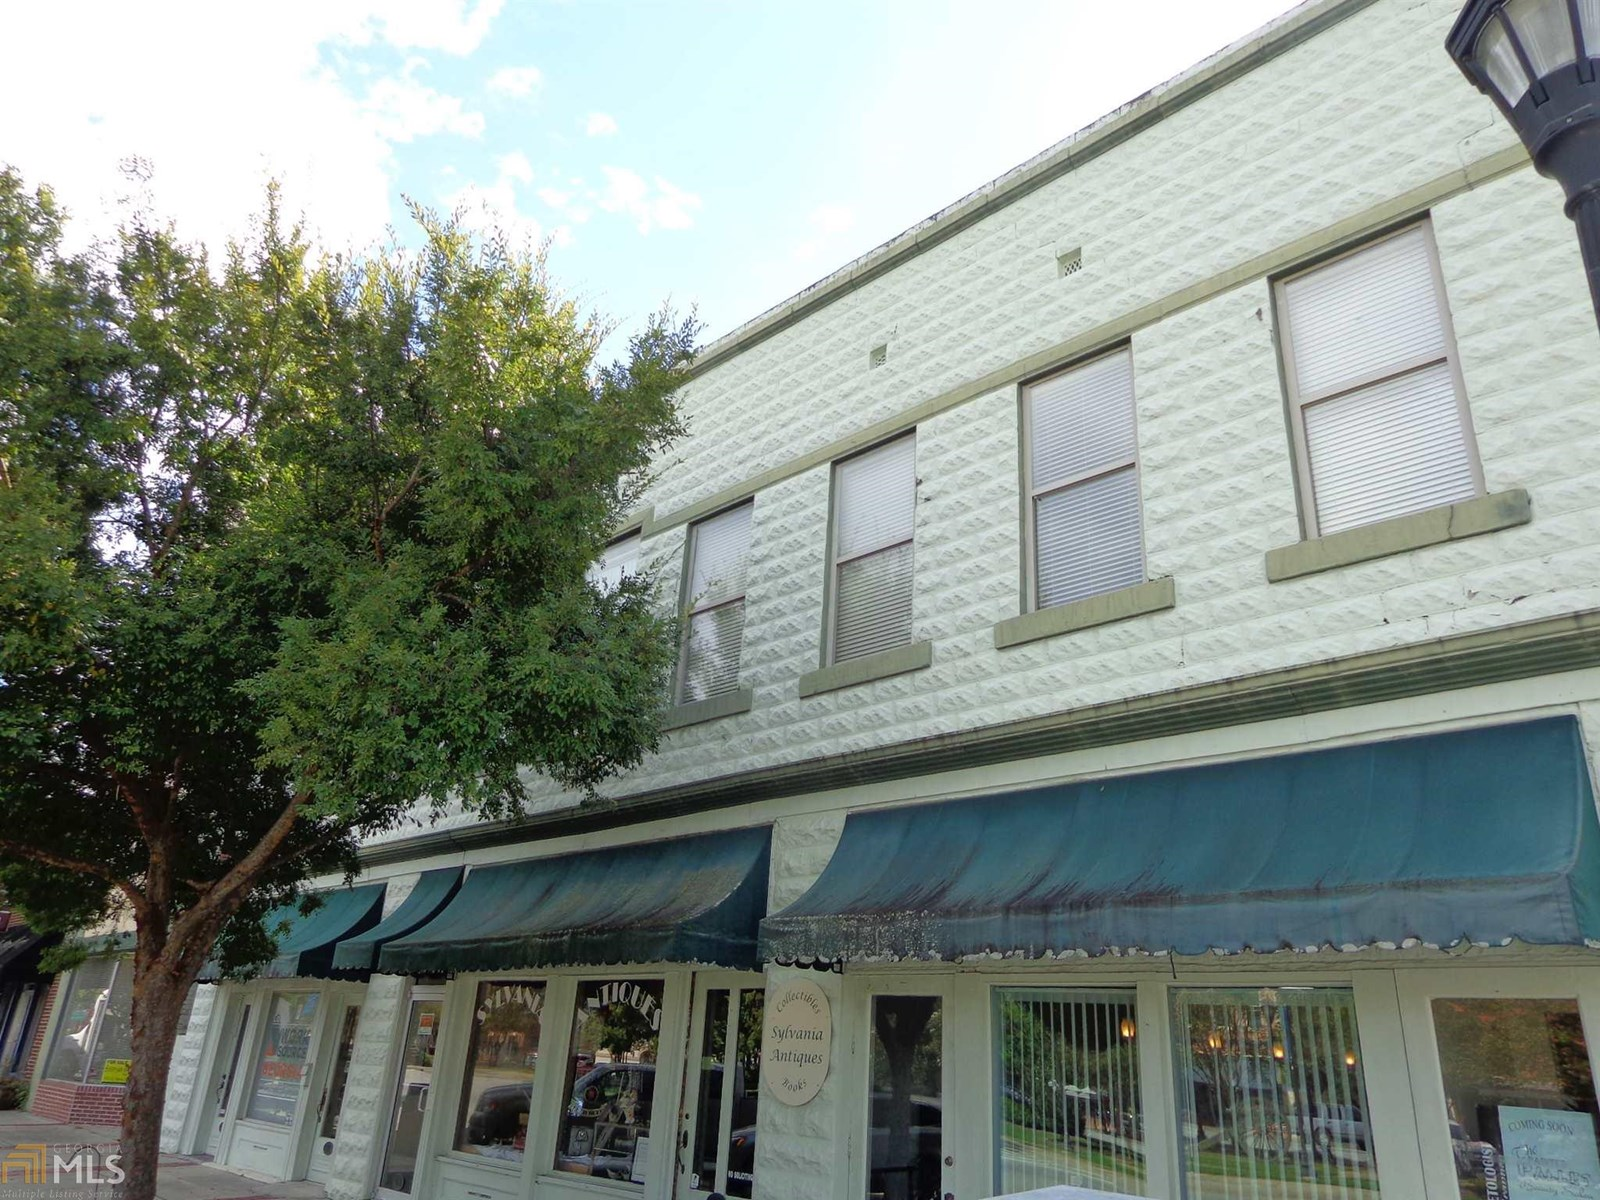 Commercial Property in Downtown Sylvania, GA